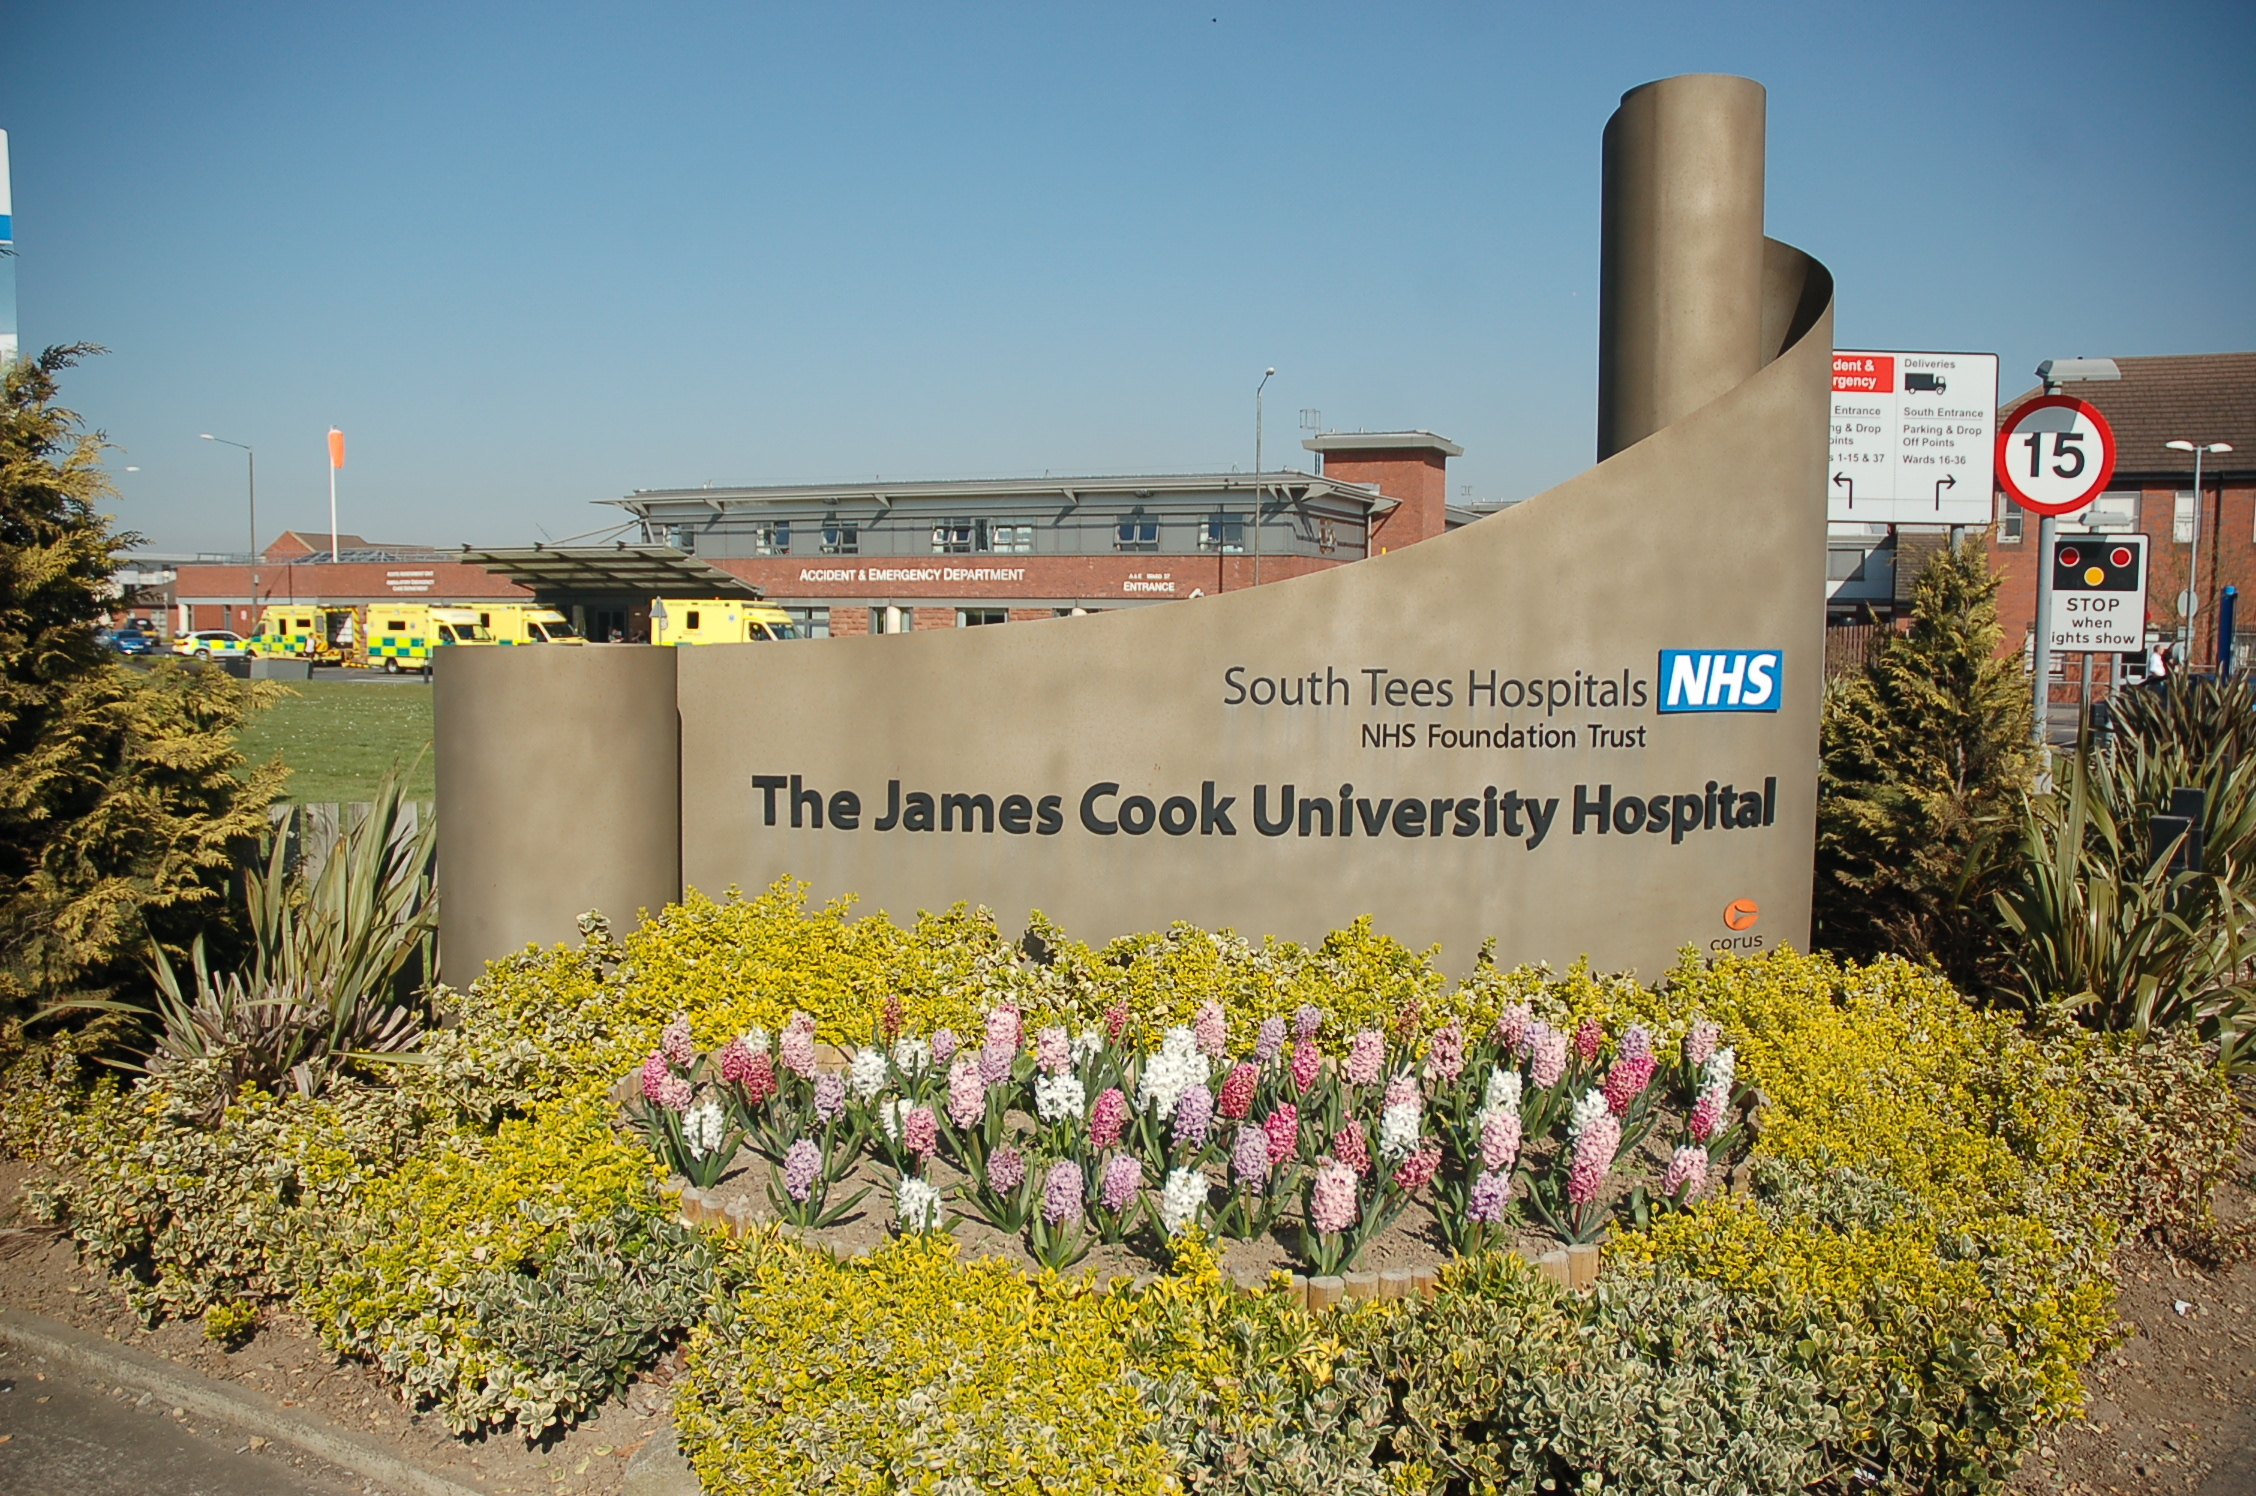 ACCESS: The James Cook University Hospital in Middlesbrough